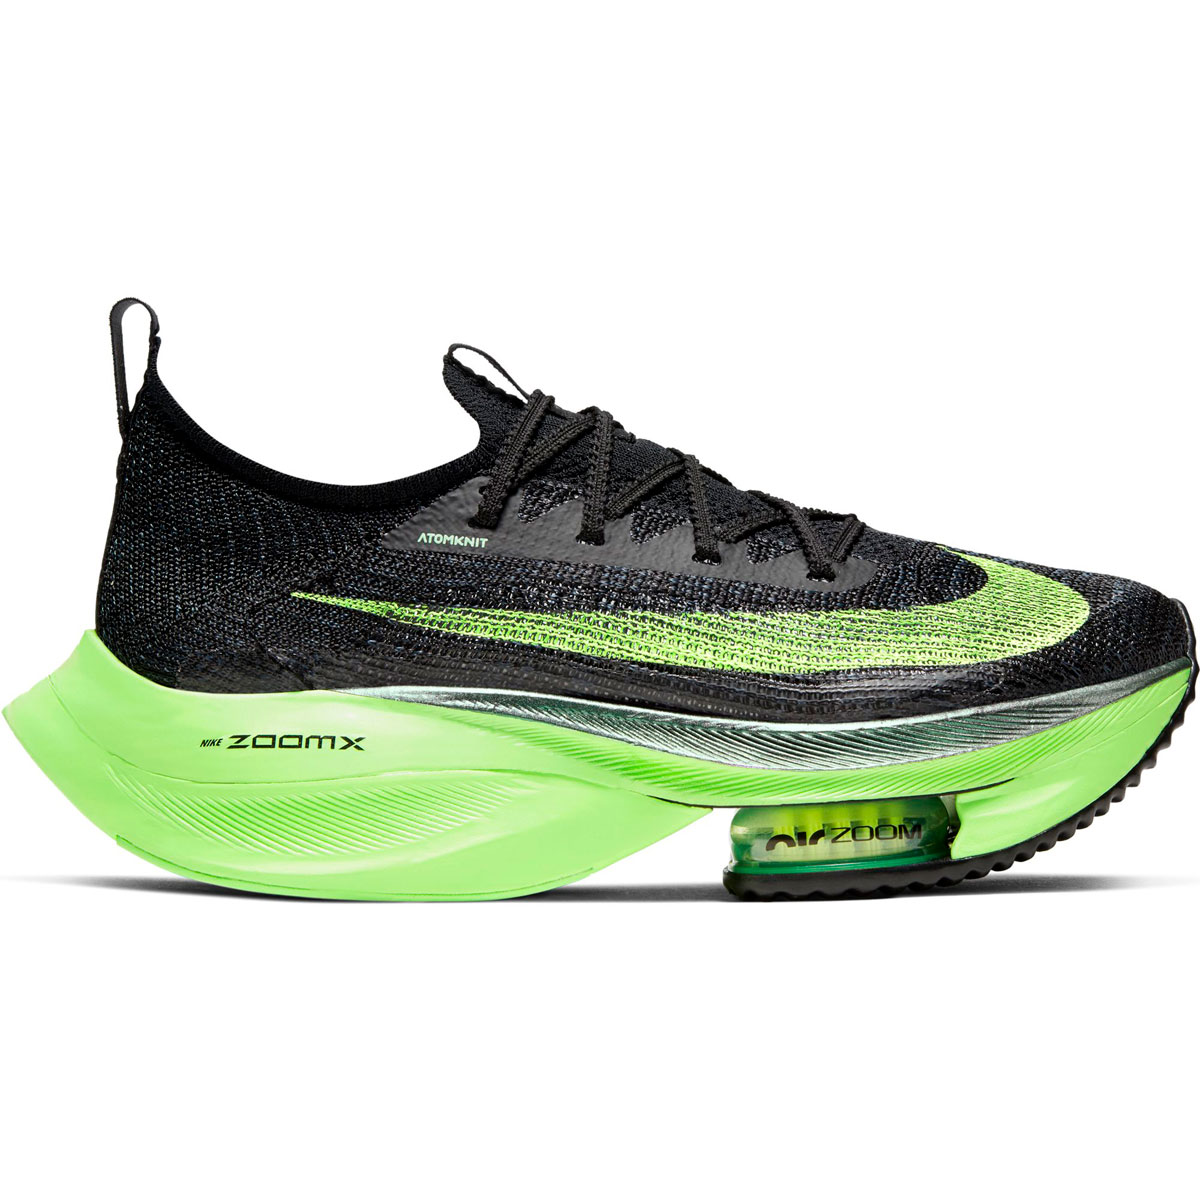 Women's Nike Air Zoom Alphafly Next% Running Shoe - Color: Black/Lime Blast - Size: 5 - Width: Regular, Black/Lime Blast, large, image 1